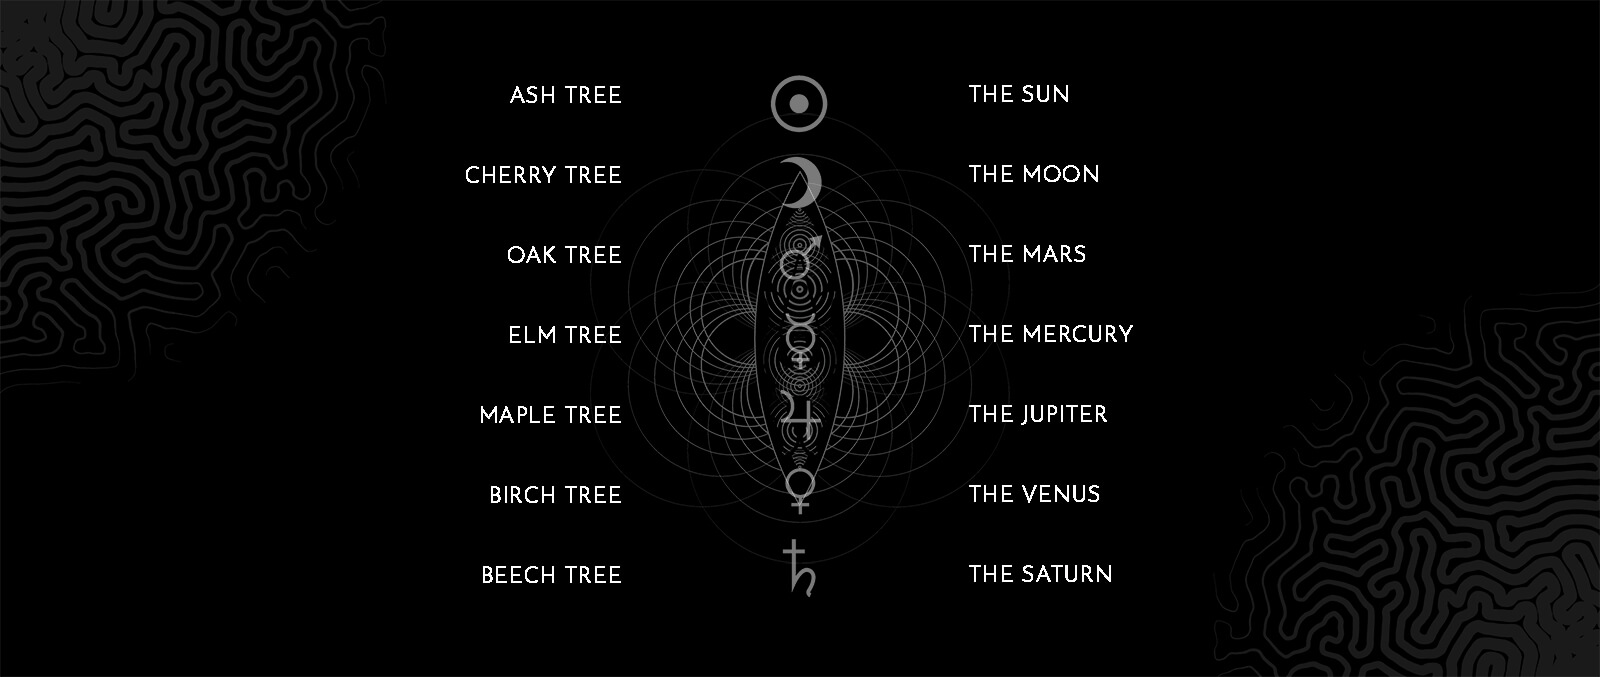 Planets & Trees